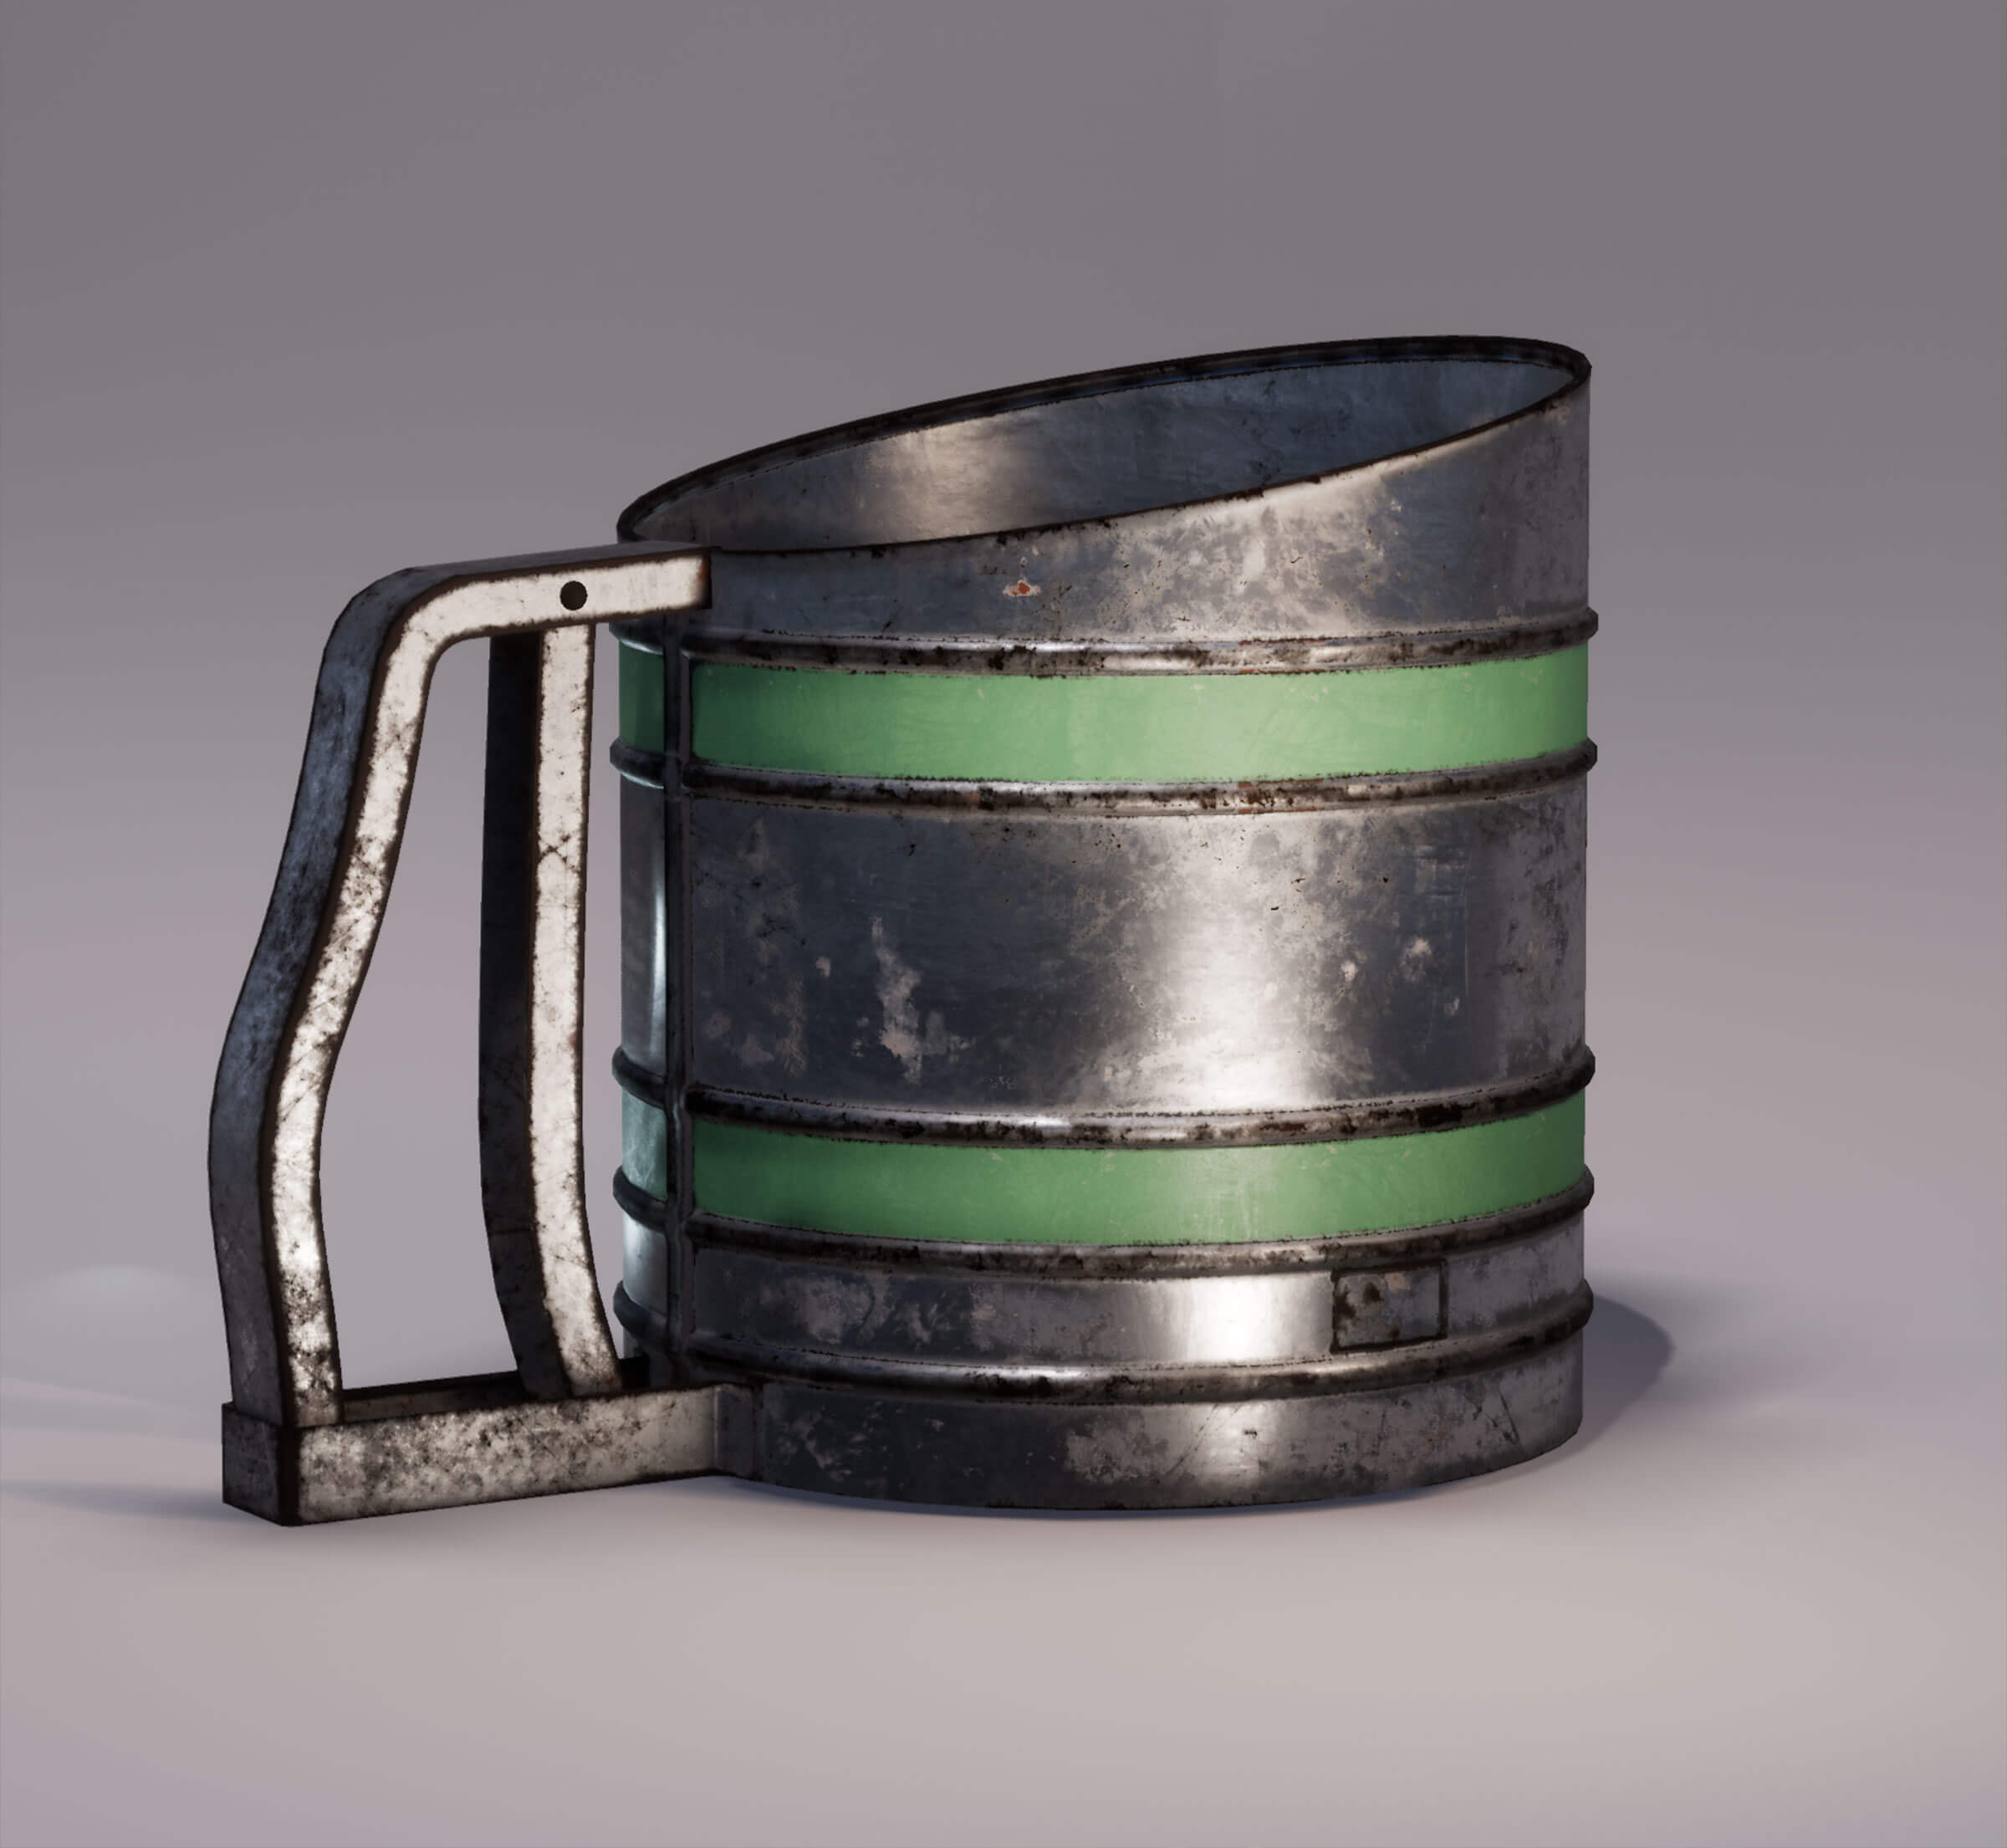 A makeshift, naked-metal mug with green trimming is pockmarked with rust and other wearing.